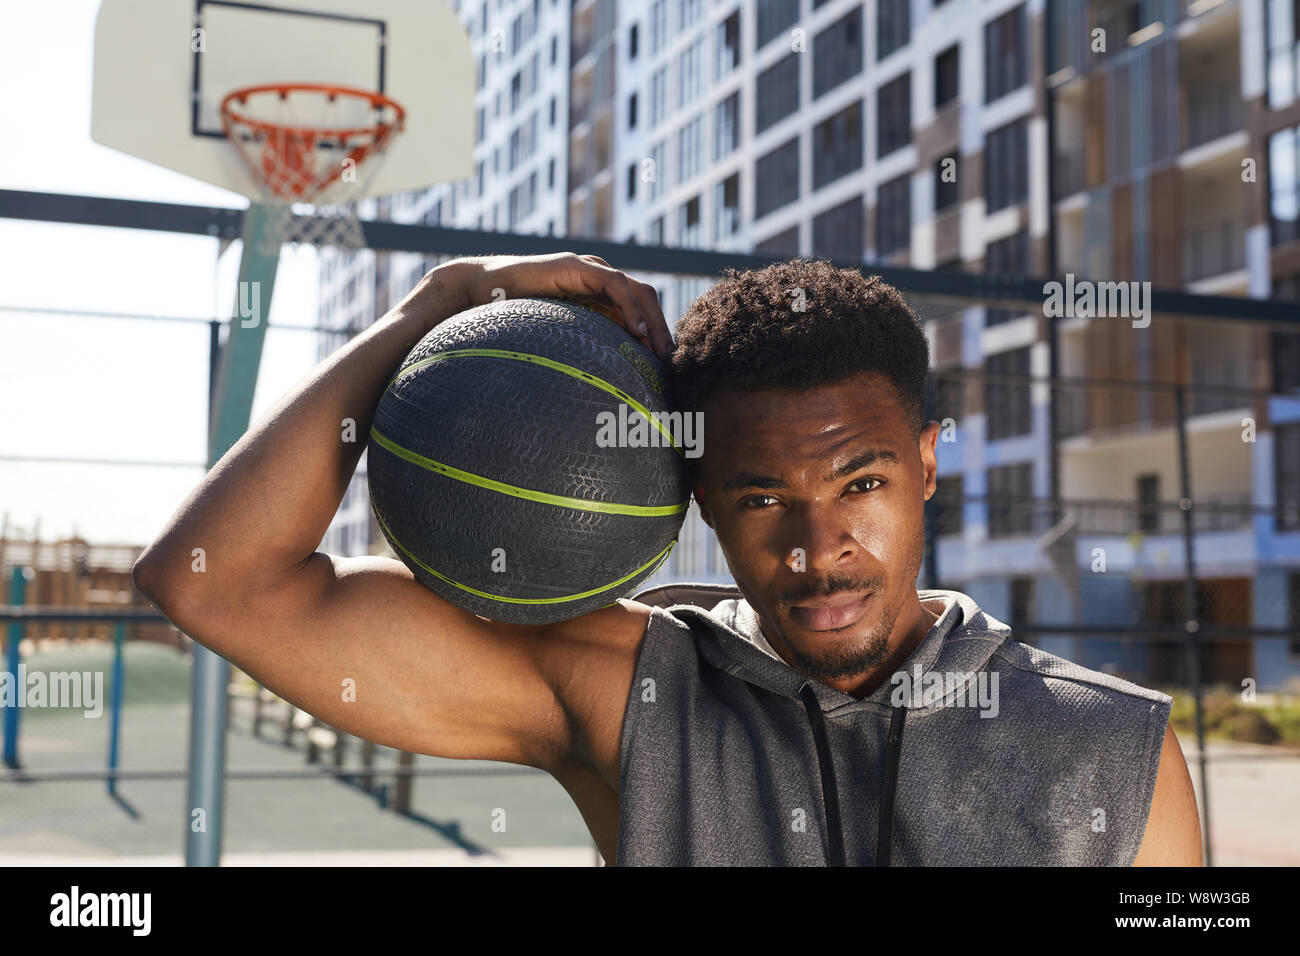 Portrait of handsome African-American man holding basketball ball looking at camera while posing in sports court outdoors, copy space Stock Photo